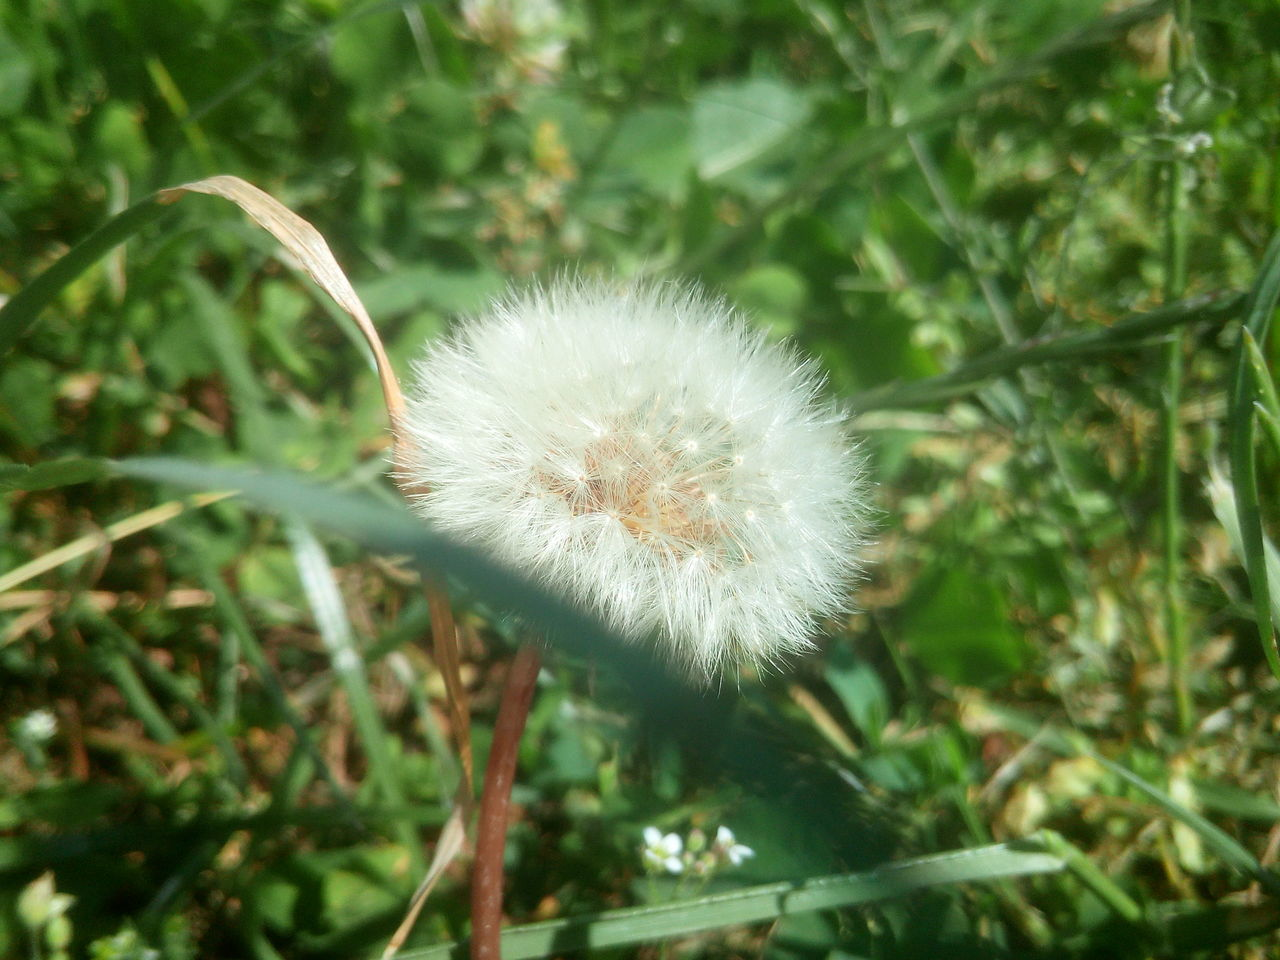 growth, nature, fragility, flower, plant, dandelion, softness, beauty in nature, outdoors, freshness, day, uncultivated, close-up, no people, flower head